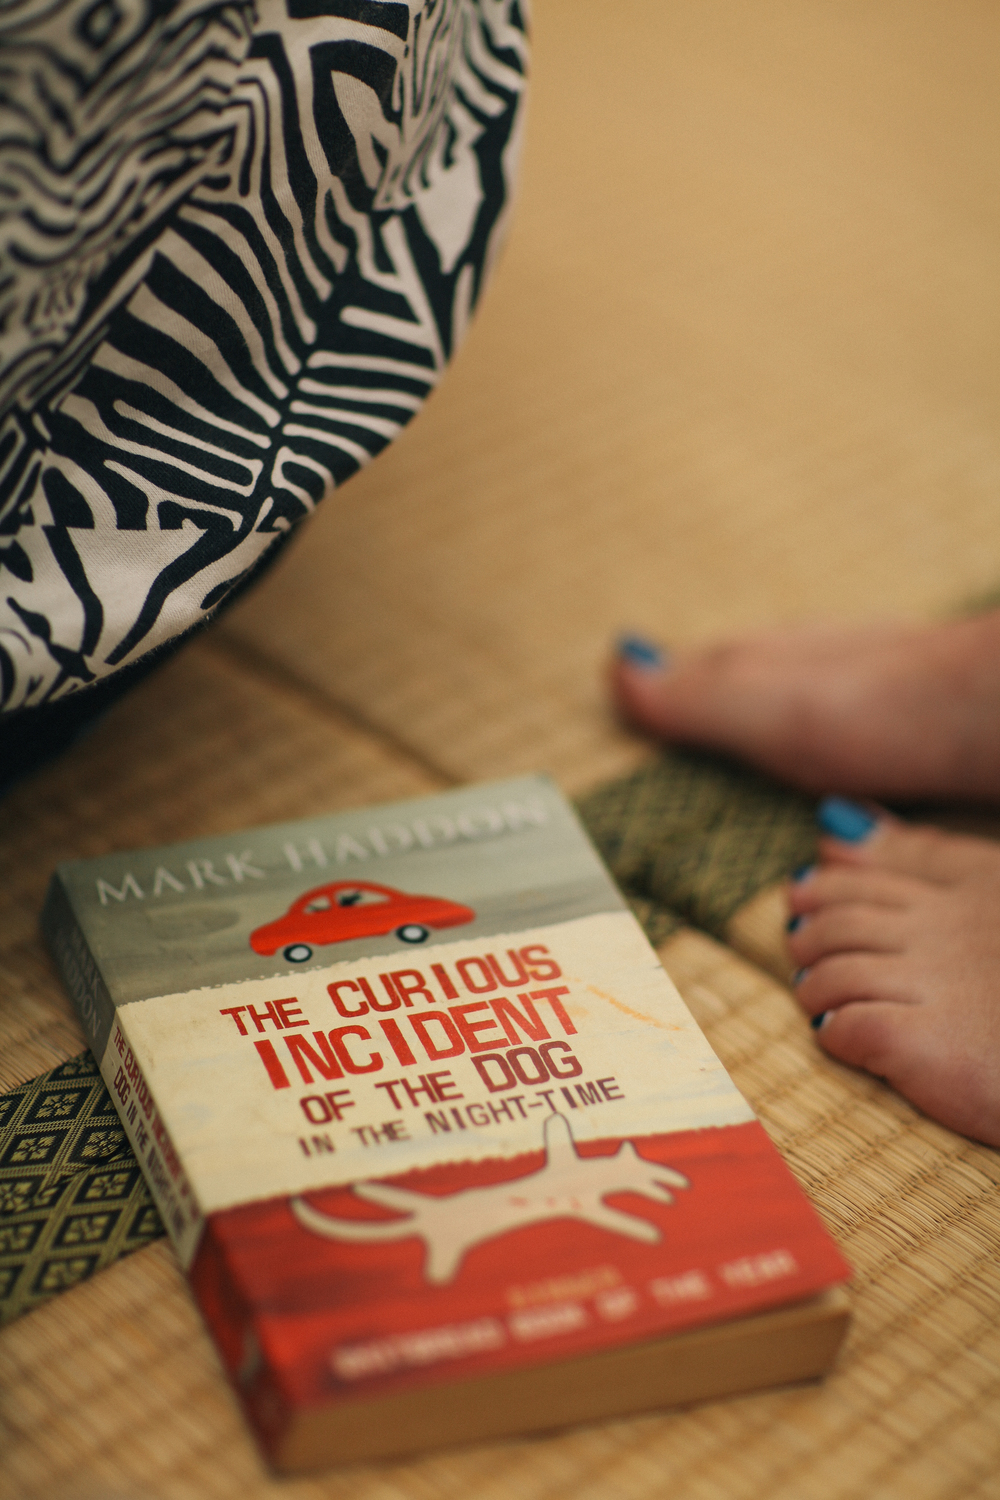 Recommended read:  The Curious Incident of the Dog in the Night-Time